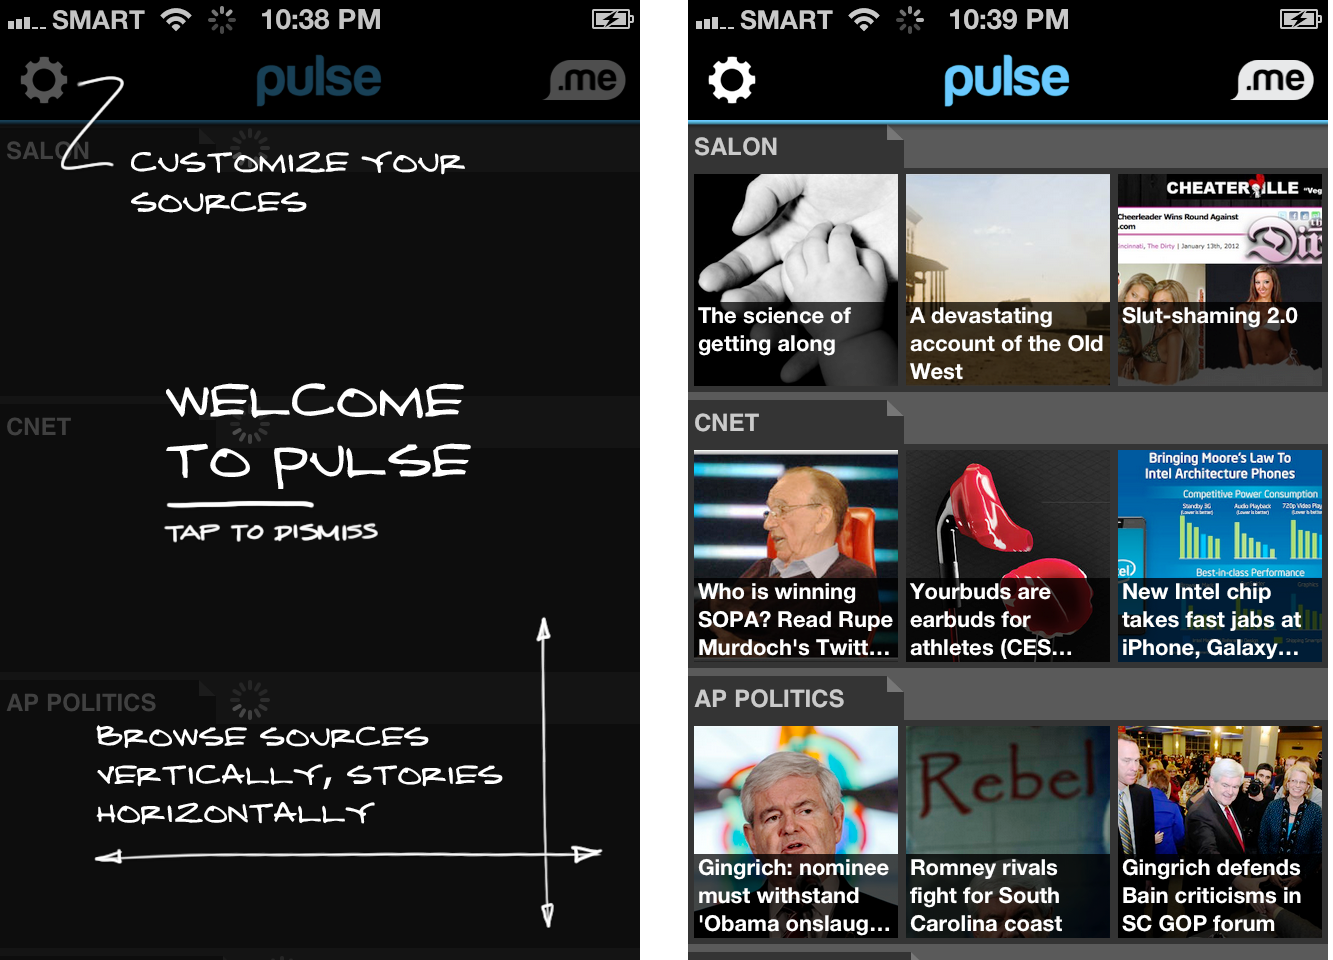 Pulse News iPhone app screen shots.